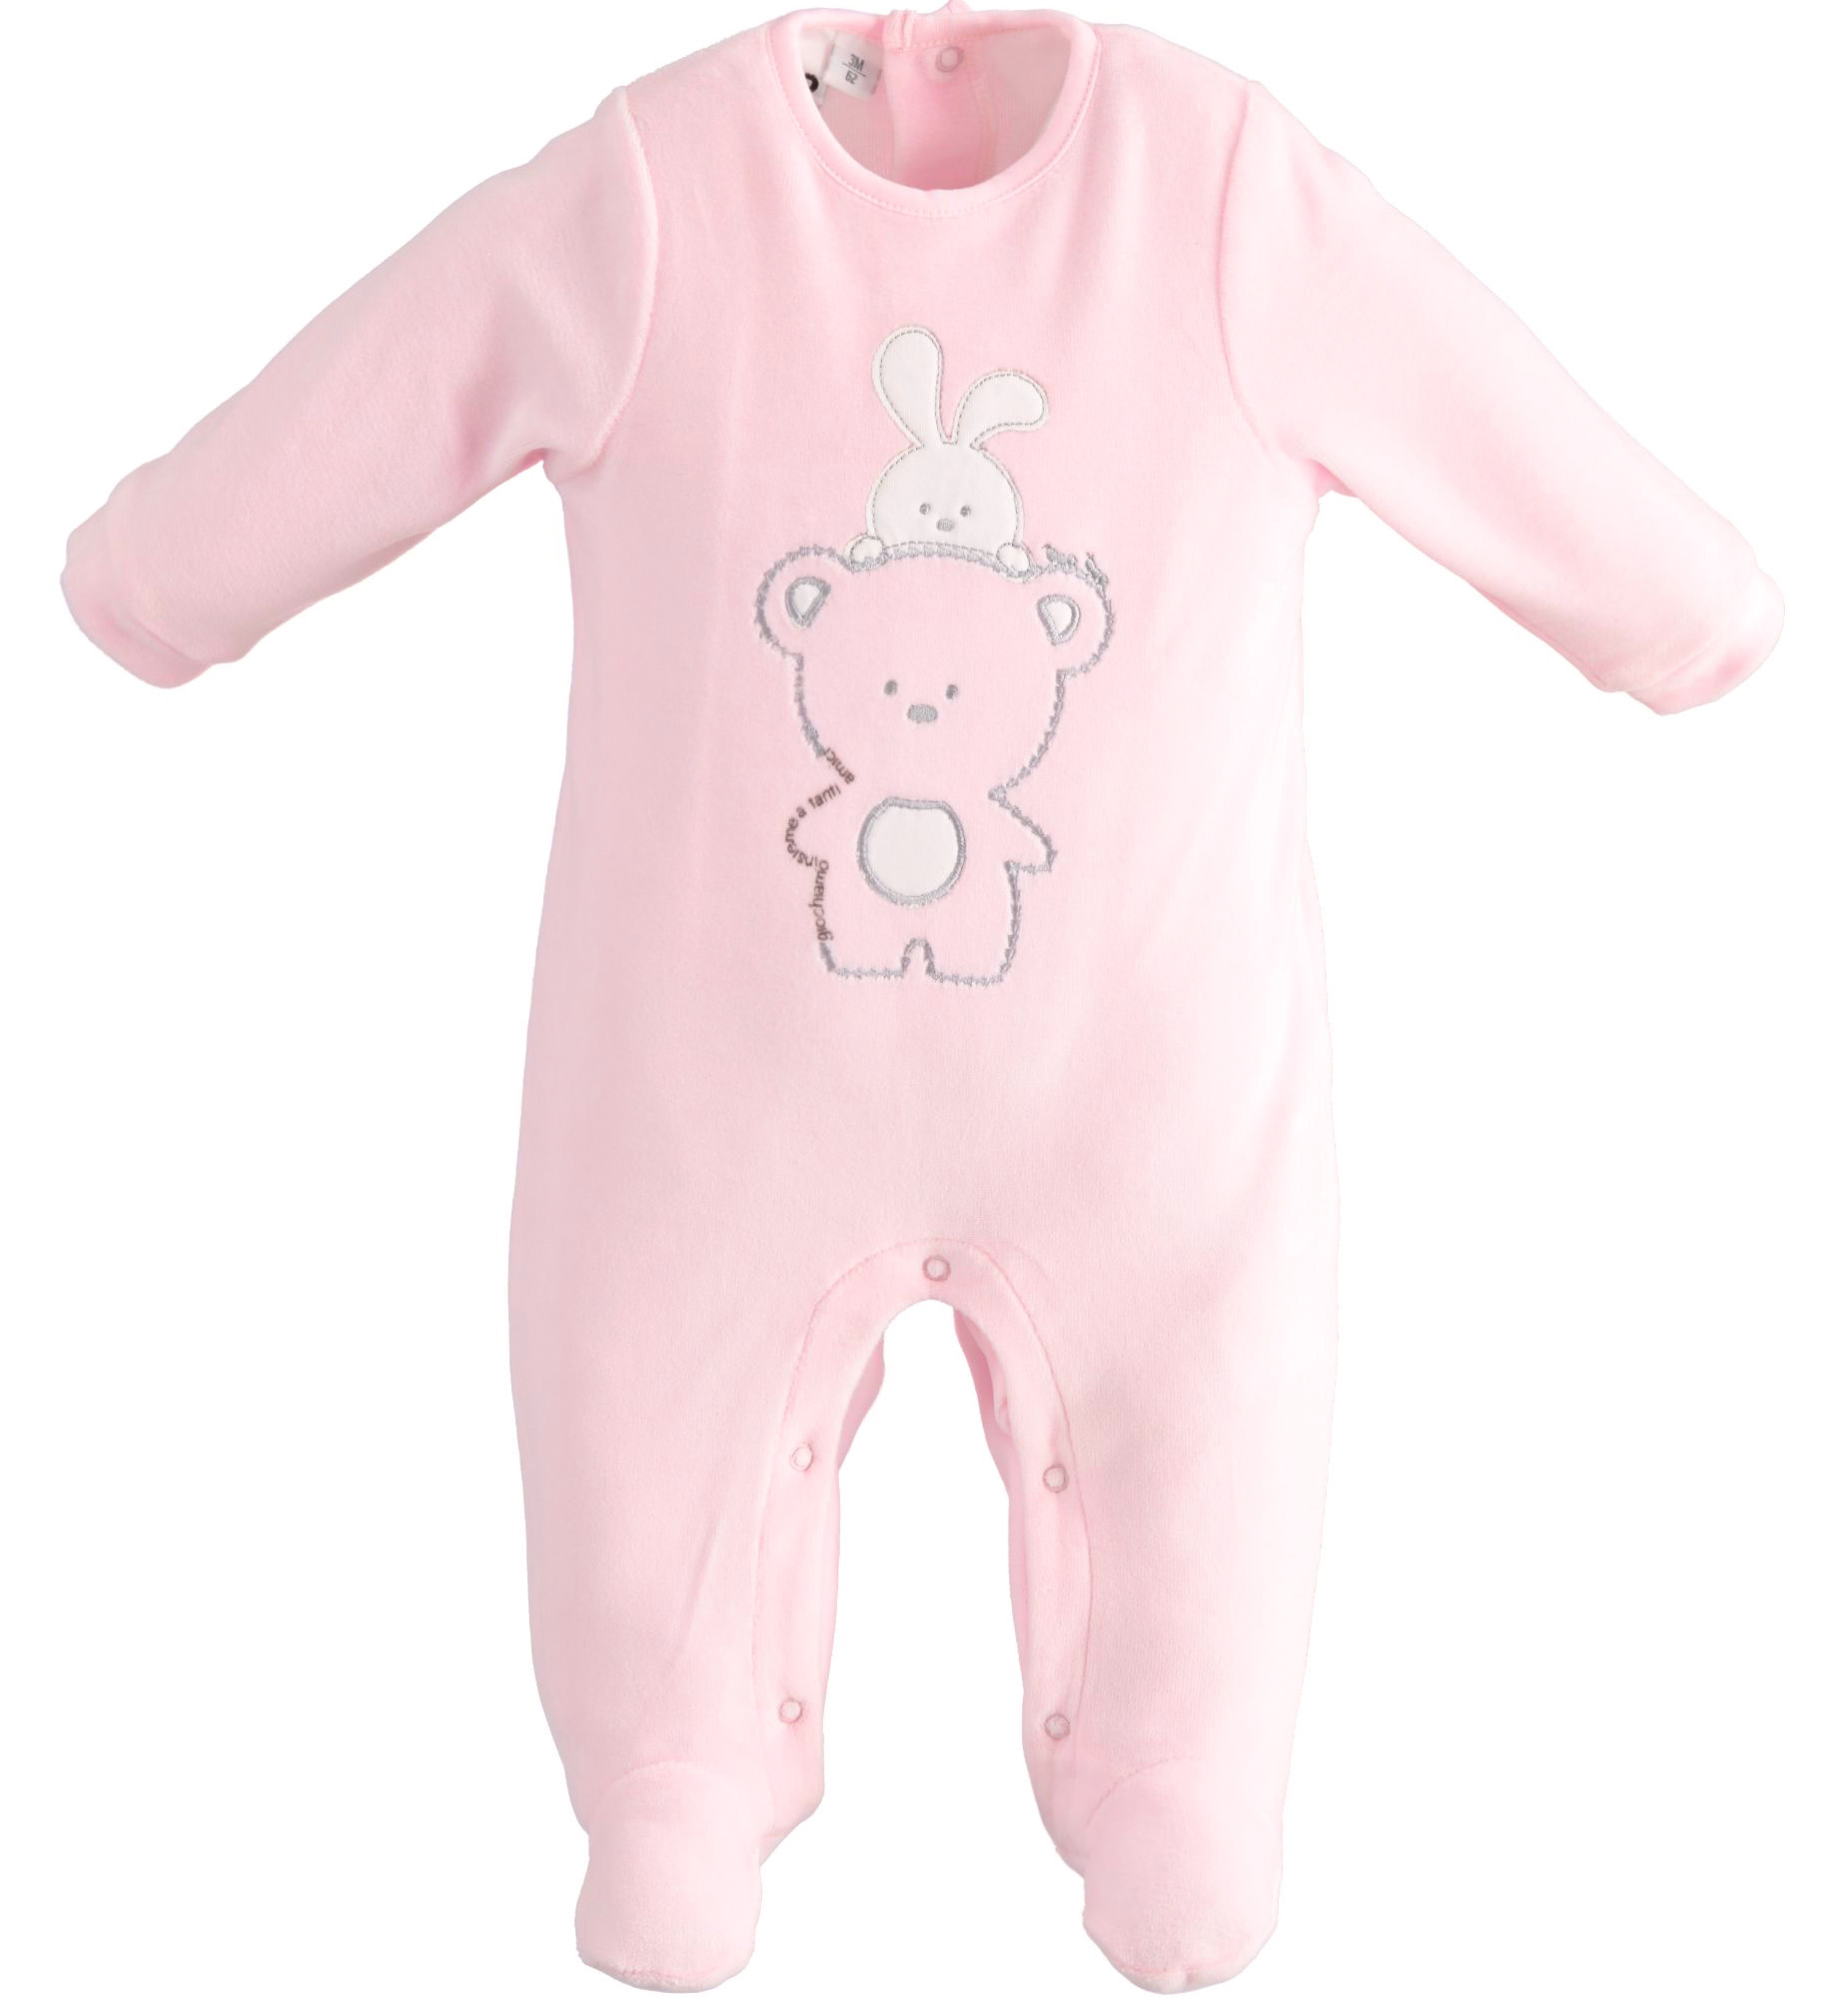 iDo iDO SS20 Baby Girl Pink Velour Babygrow with teddy J069